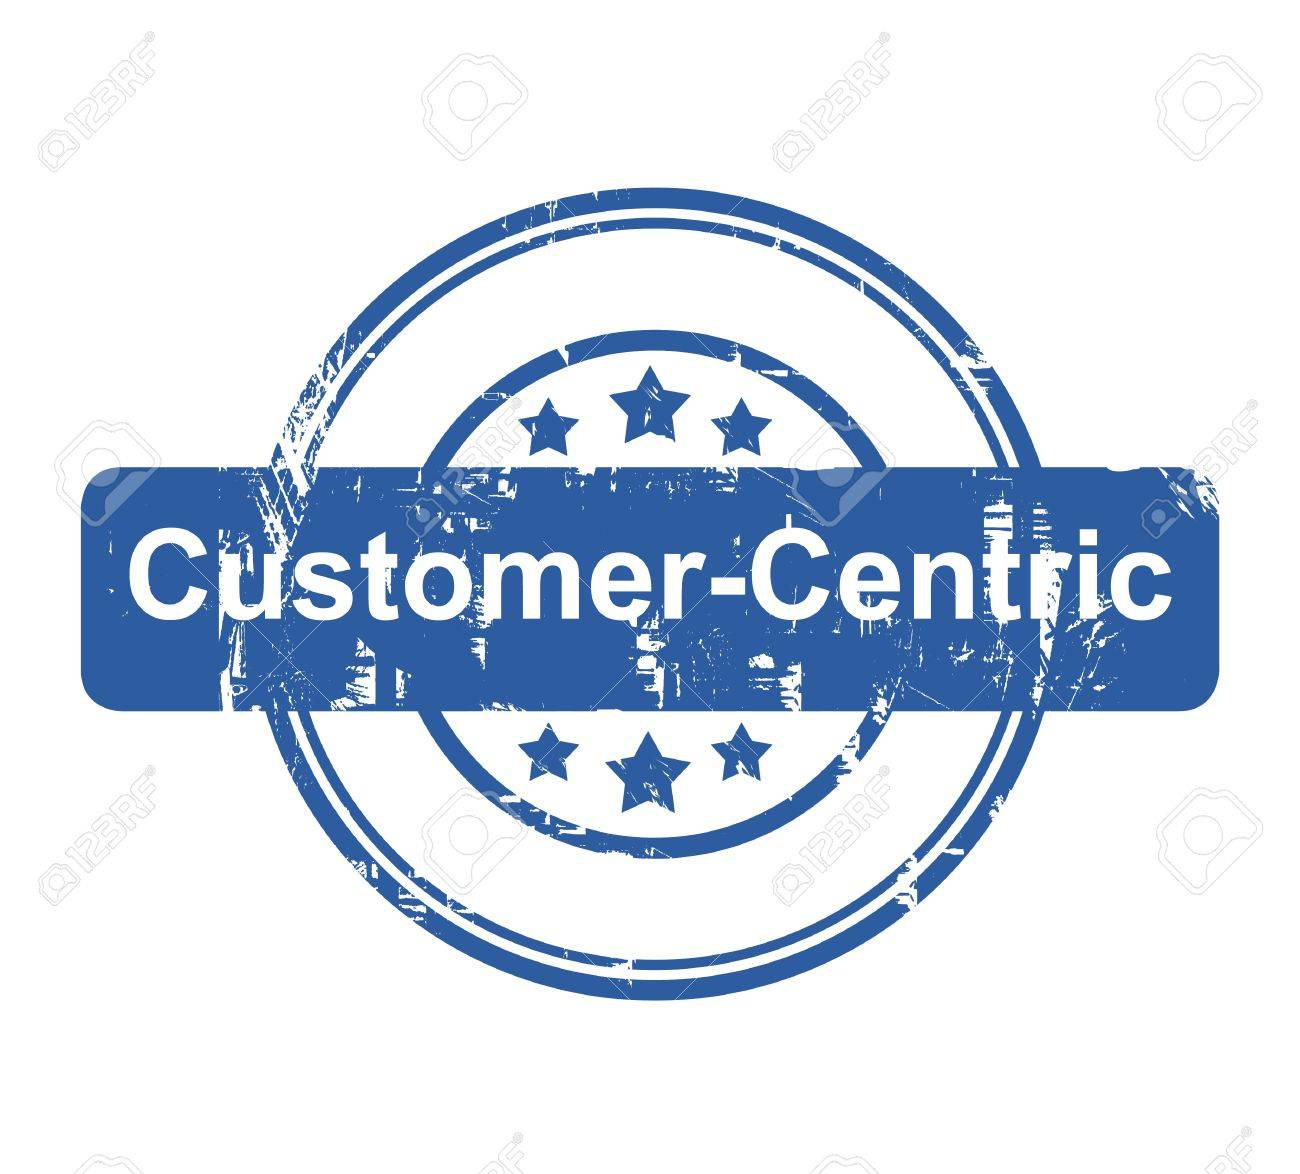 Customer Centric business concept stamp with stars isolated on a white background. - 35080180